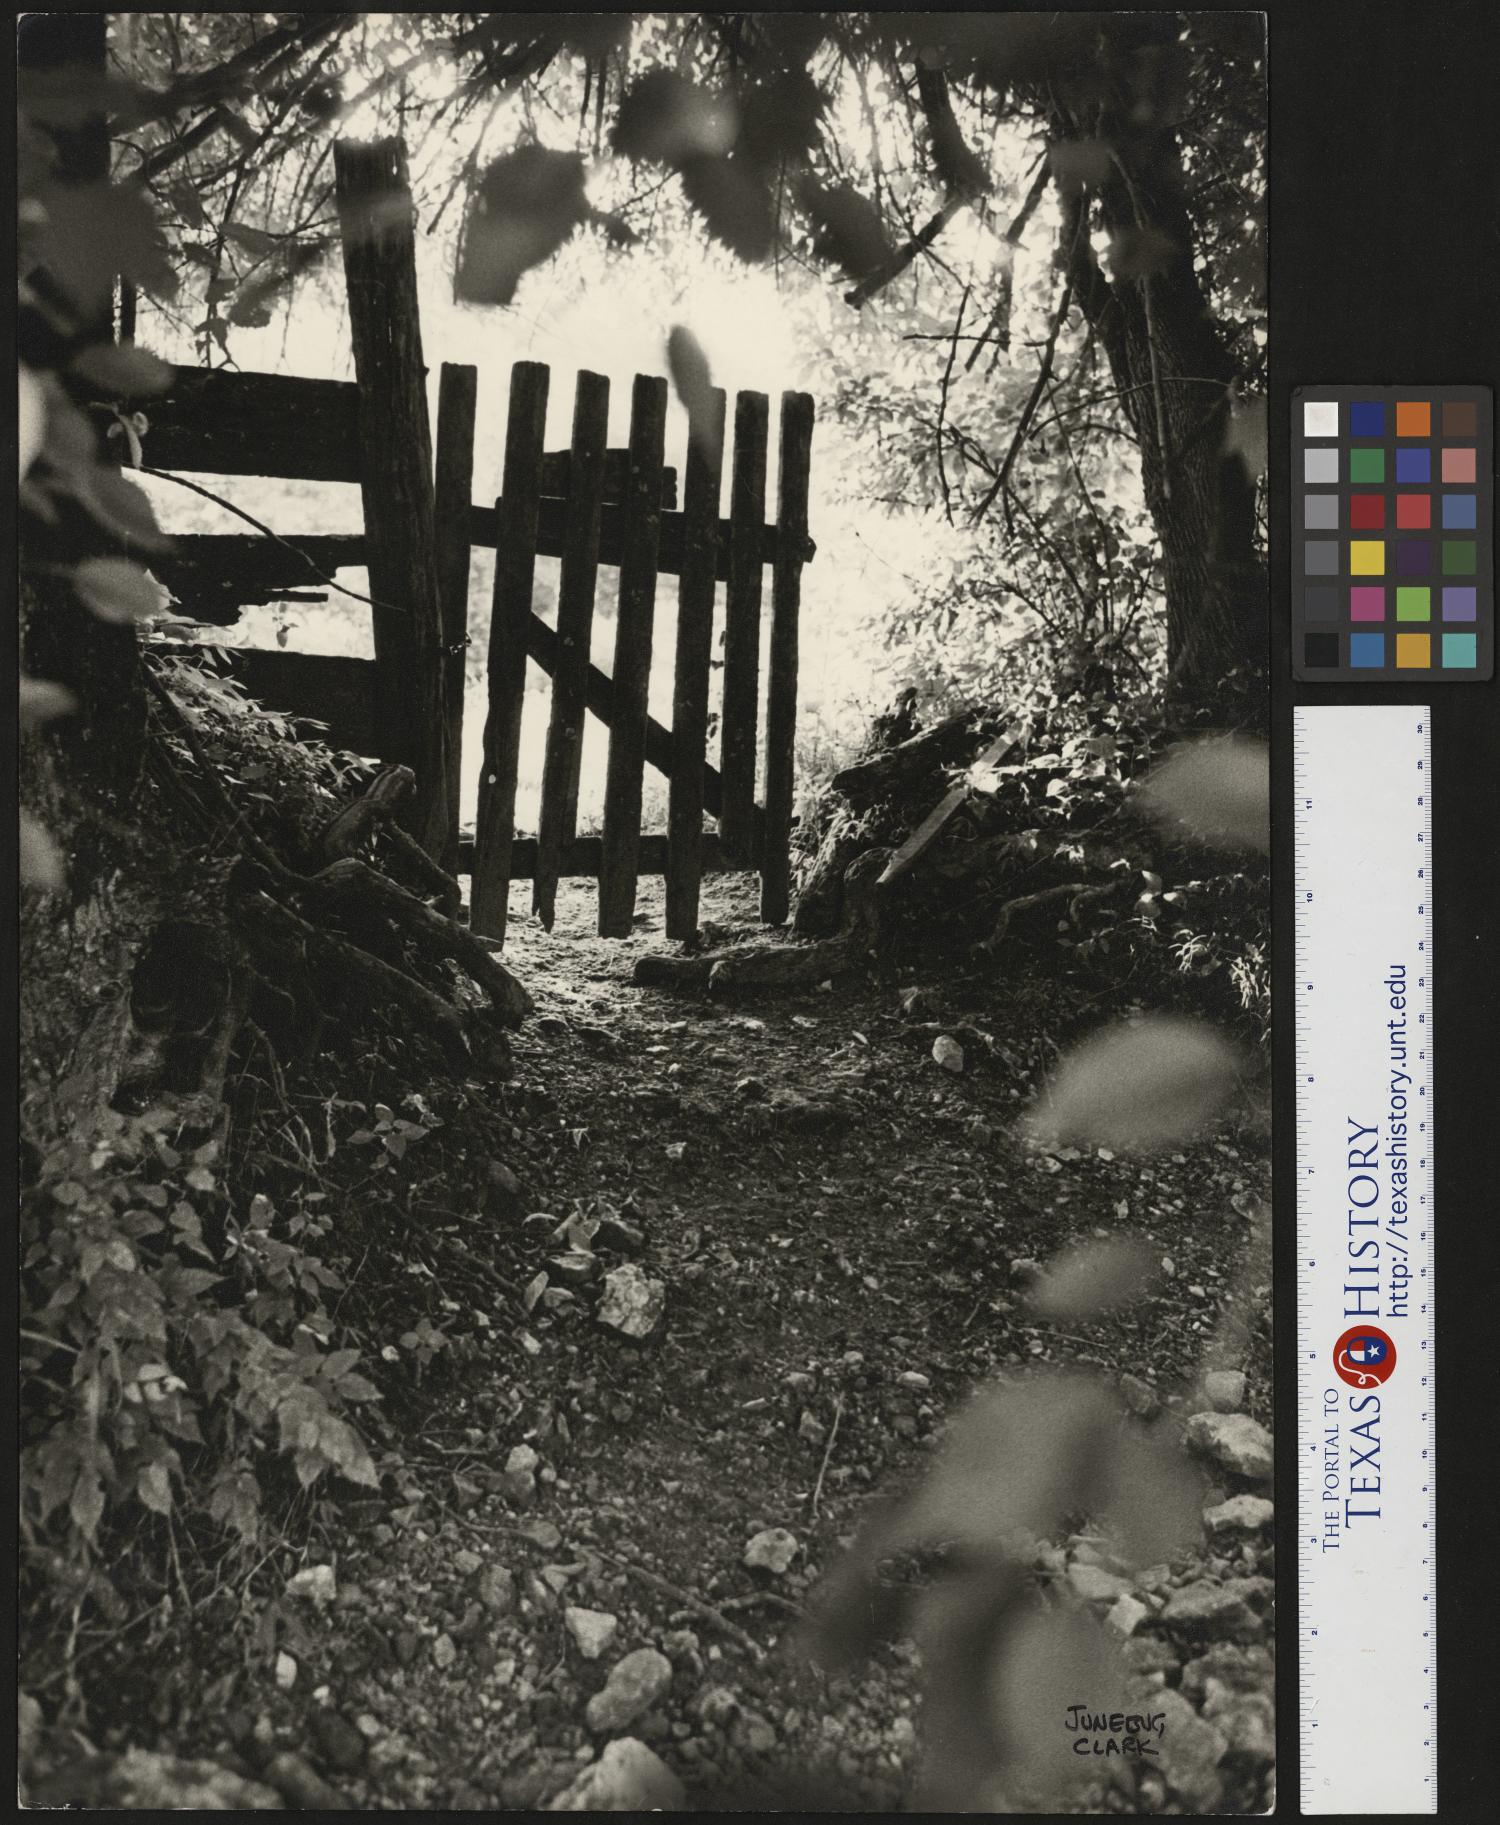 """The Gate to Nowhere and The Gate to Everywhere, Photograph of a handmade wooden gate blocking off a trail through the woods. Junebug Clark narrative: """"The Gate to Nowhere and The Gate to Everywhere"""" always held a form of symbolism to me. As a photographer, I knew no bounds. A closed gate always felt like an invitation that, mostly for good and a rare time or two maybe a little too exciting, I always accepted or was left to wonder what I might have missed. Photo by: Junebug Clark. Signed by: Junebug Clark,"""